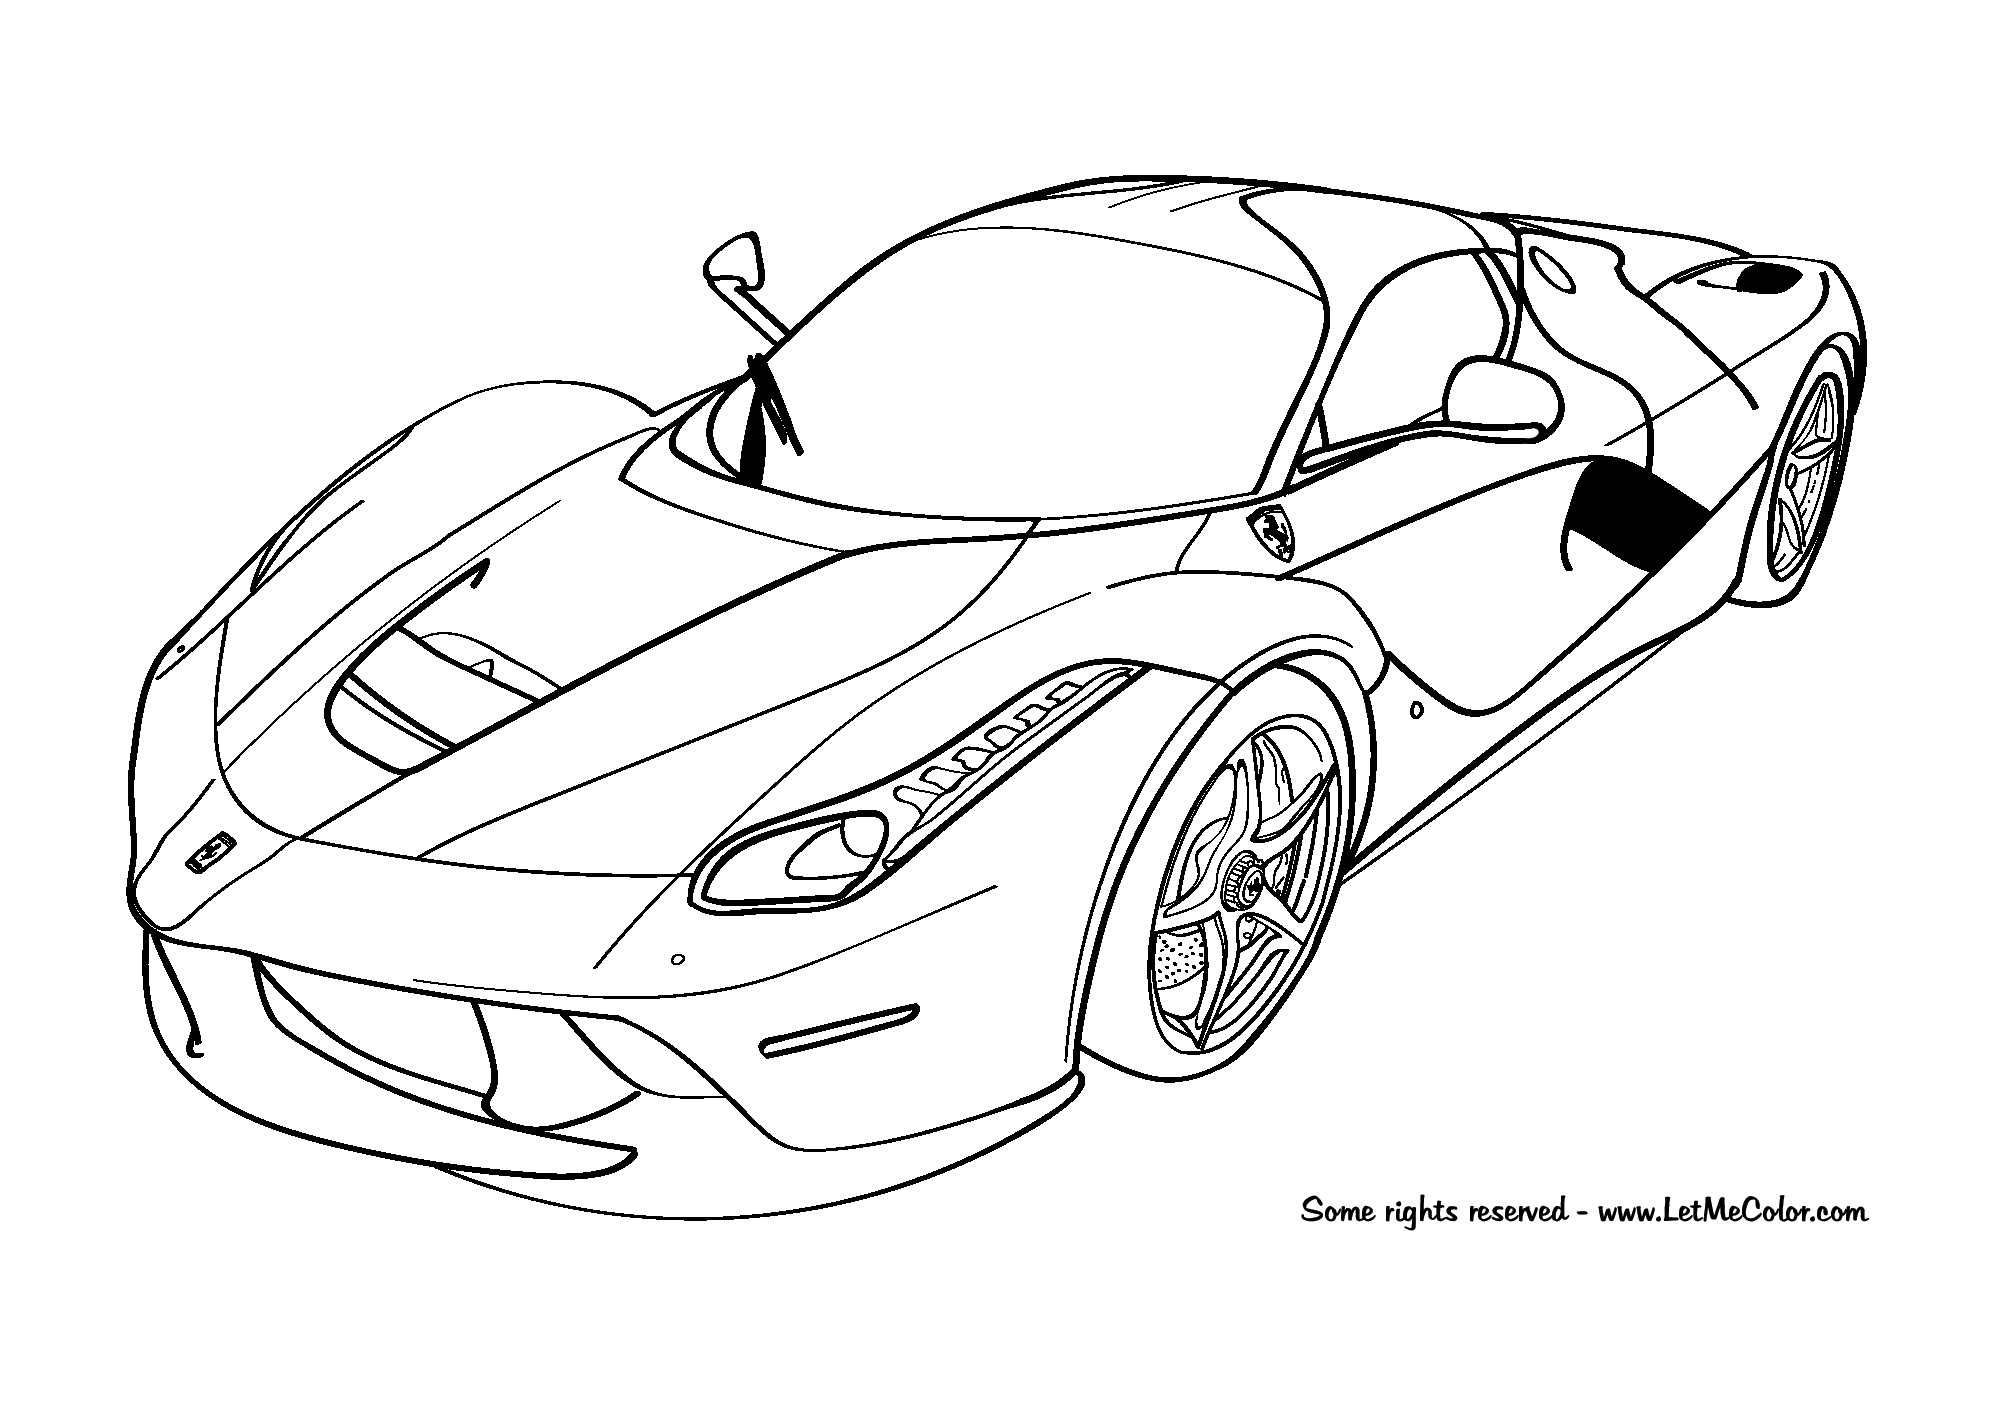 2000x1414 Bugatti Veyron Supercar Coloring Page Letmecolor Com Awesome